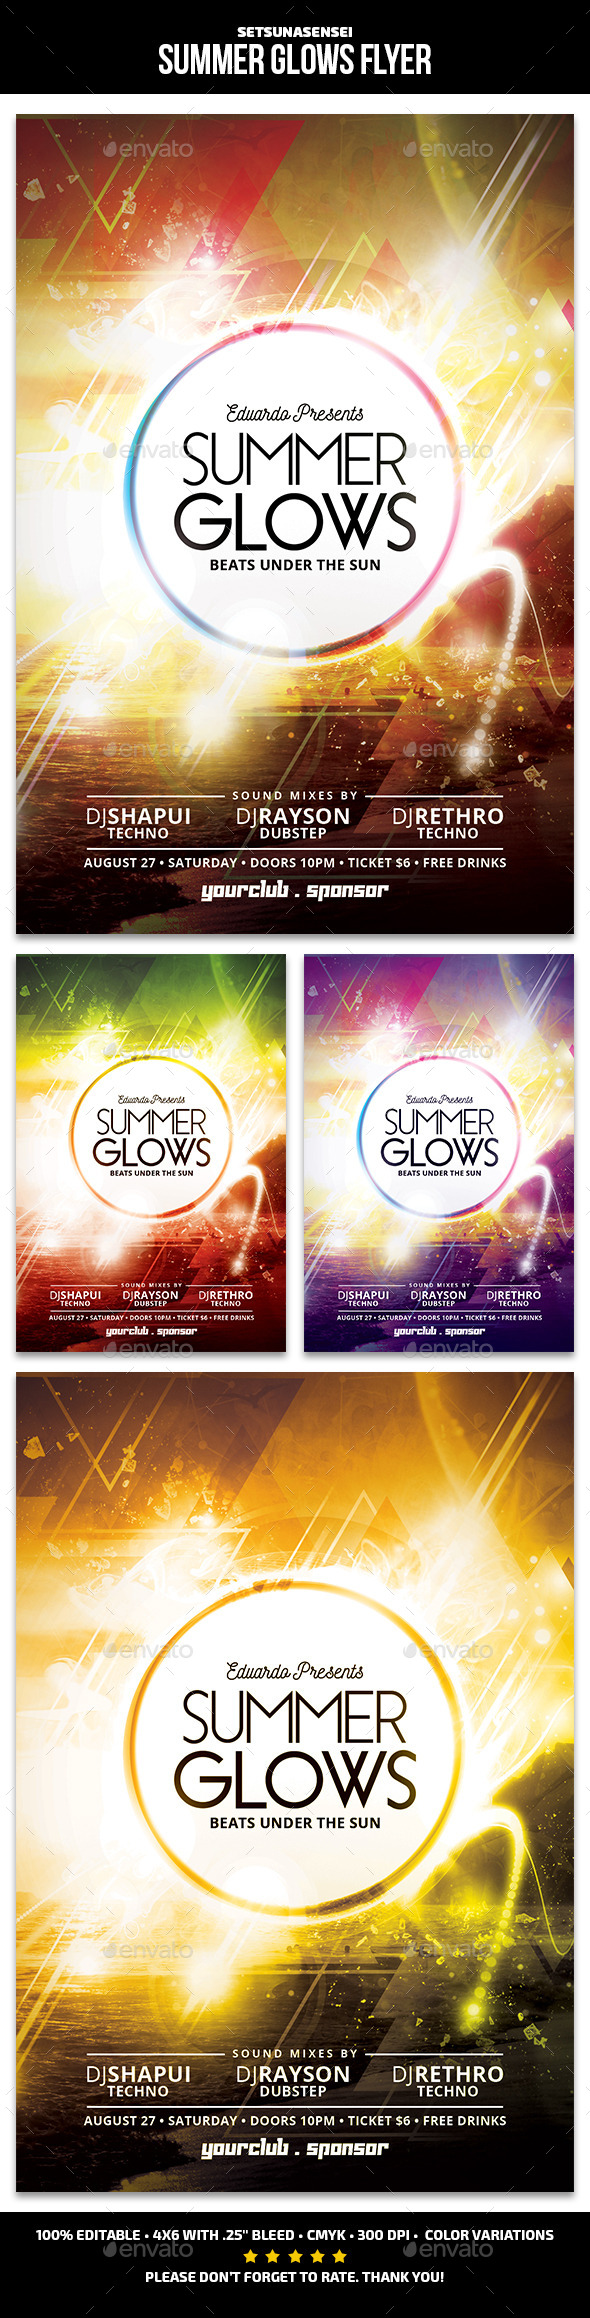 Summer Glows Flyer - Clubs & Parties Events